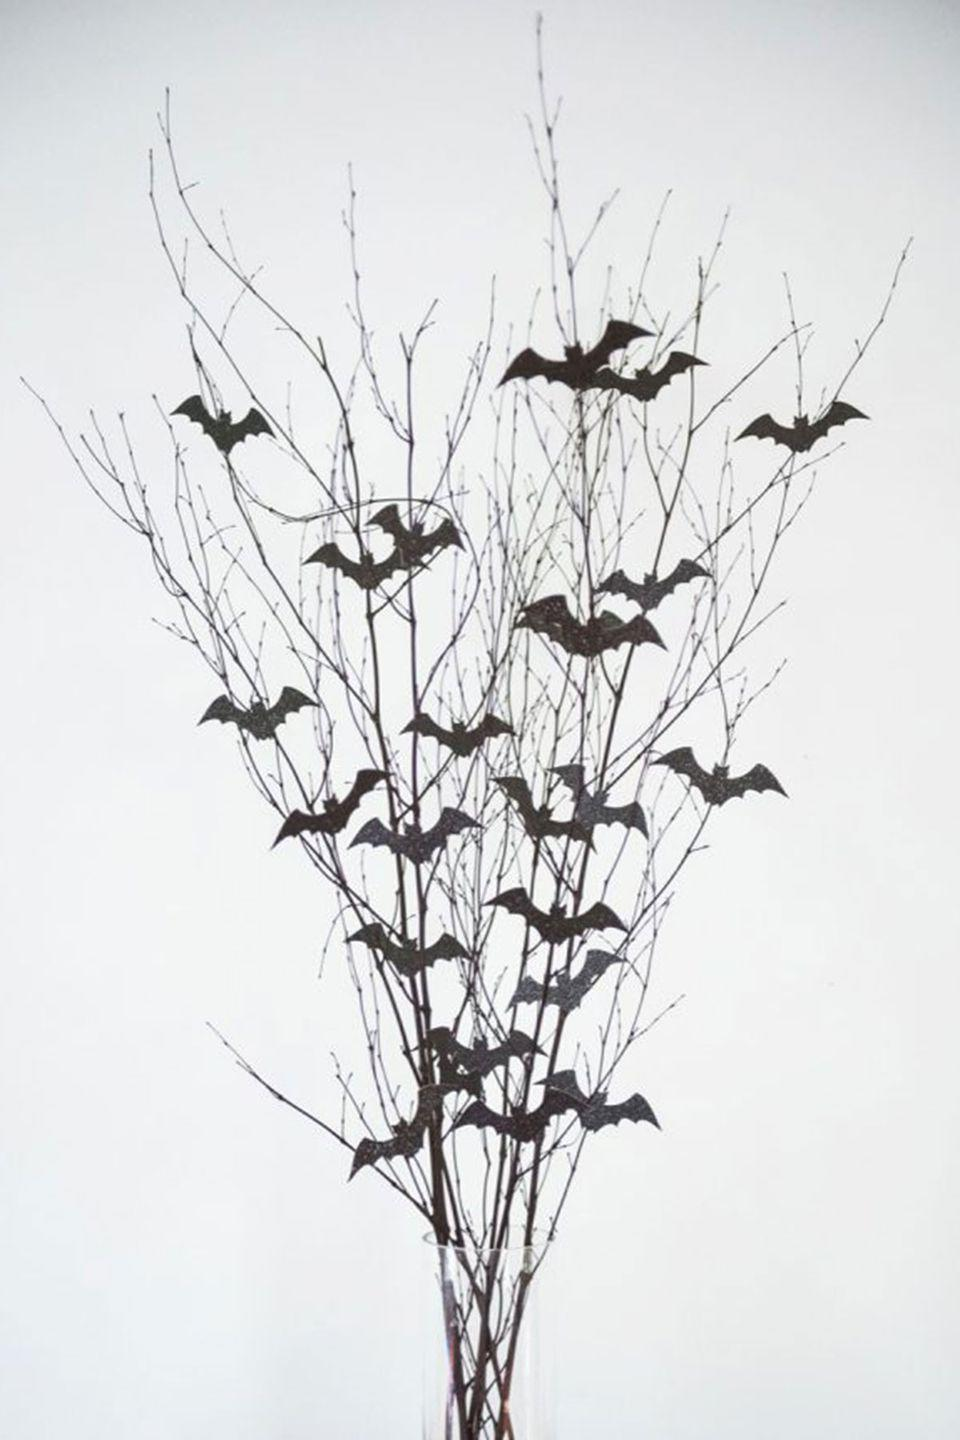 """<p>Give your table a spooky feel with this easy-to-make arrangement. Plus, you can save money on this DIY by foraging your backyard for branches and twigs.</p><p><strong>Get the tutorial at <a href=""""http://thesweetestoccasion.com/2016/10/diy-halloween-centerpiece/"""" rel=""""nofollow noopener"""" target=""""_blank"""" data-ylk=""""slk:The Sweetest Occasion"""" class=""""link rapid-noclick-resp"""">The Sweetest Occasion</a>.</strong></p><p><strong><a class=""""link rapid-noclick-resp"""" href=""""https://www.amazon.com/Halloween-Fntacetik-Decorations-Window-Stickers/dp/B07H6X84SR/ref=sr_1_2?tag=syn-yahoo-20&ascsubtag=%5Bartid%7C10050.g.3739%5Bsrc%7Cyahoo-us"""" rel=""""nofollow noopener"""" target=""""_blank"""" data-ylk=""""slk:SHOP BAT CUTOUTS"""">SHOP BAT CUTOUTS</a></strong> </p>"""